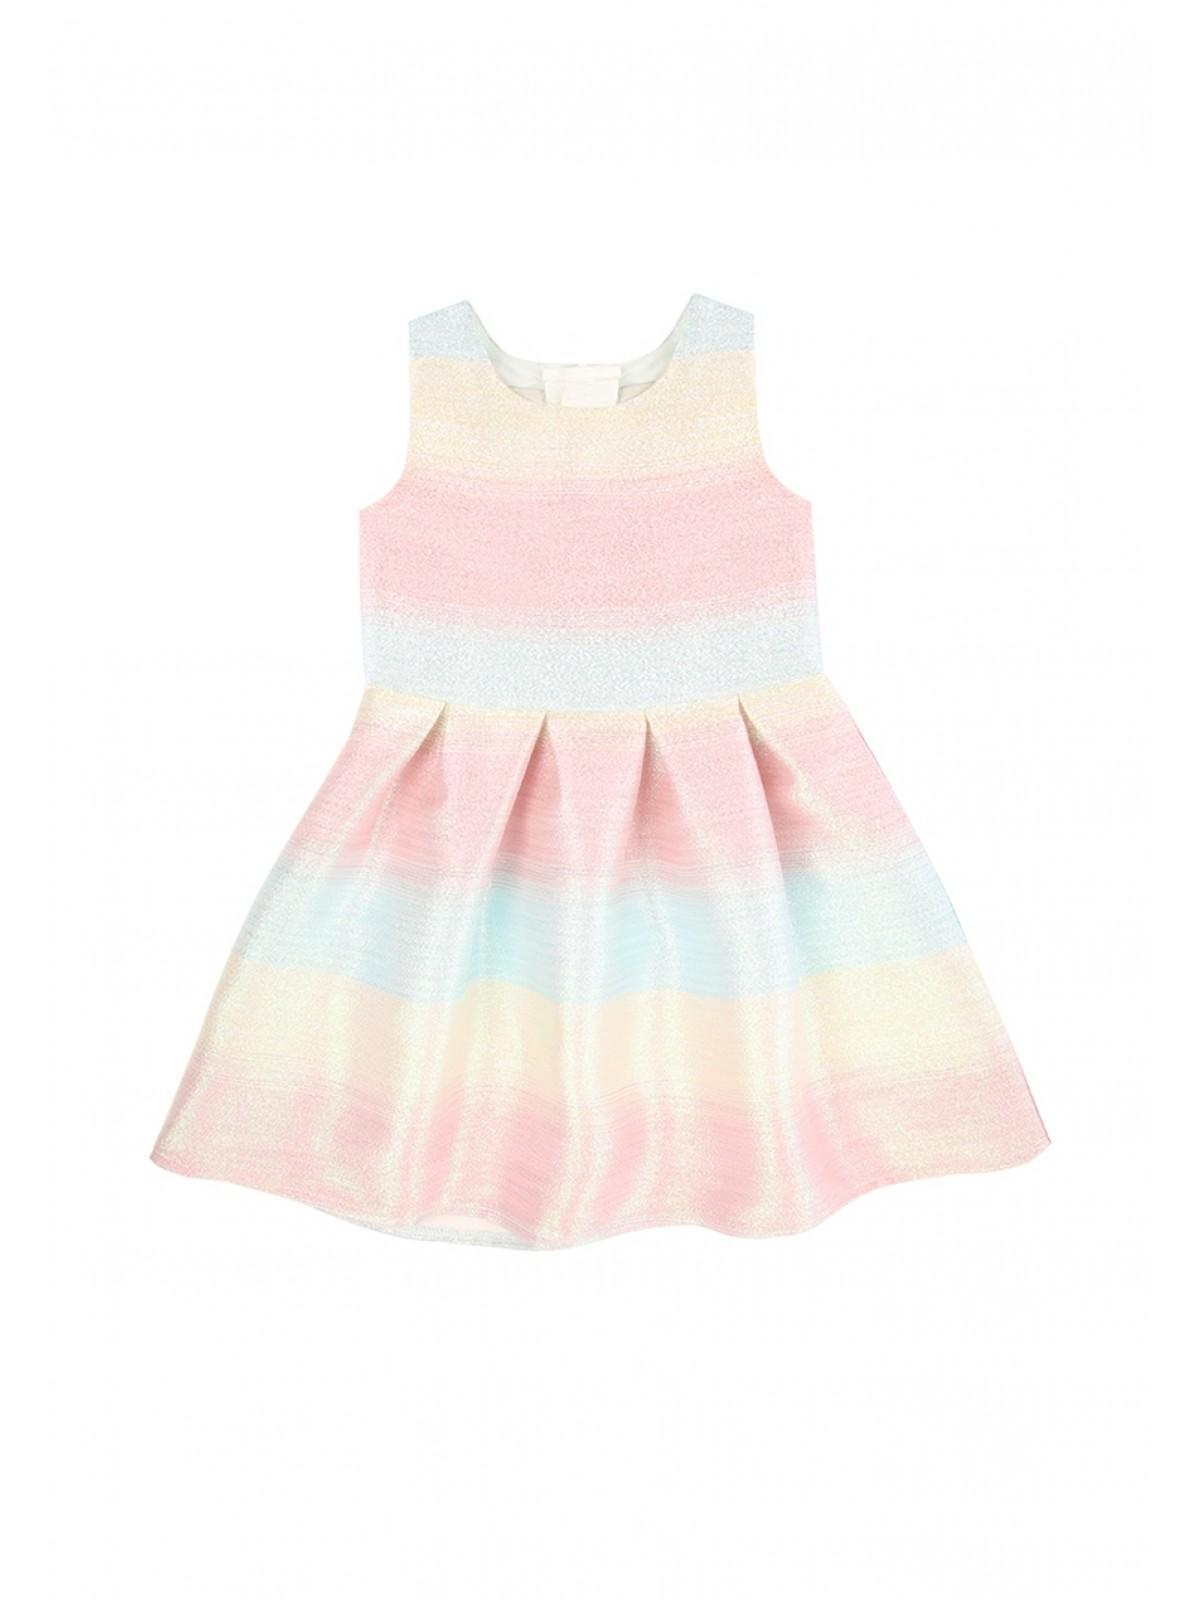 6760e150604a8 Home; Younger Girls Rainbow Party Dress. Back. PreviousNext